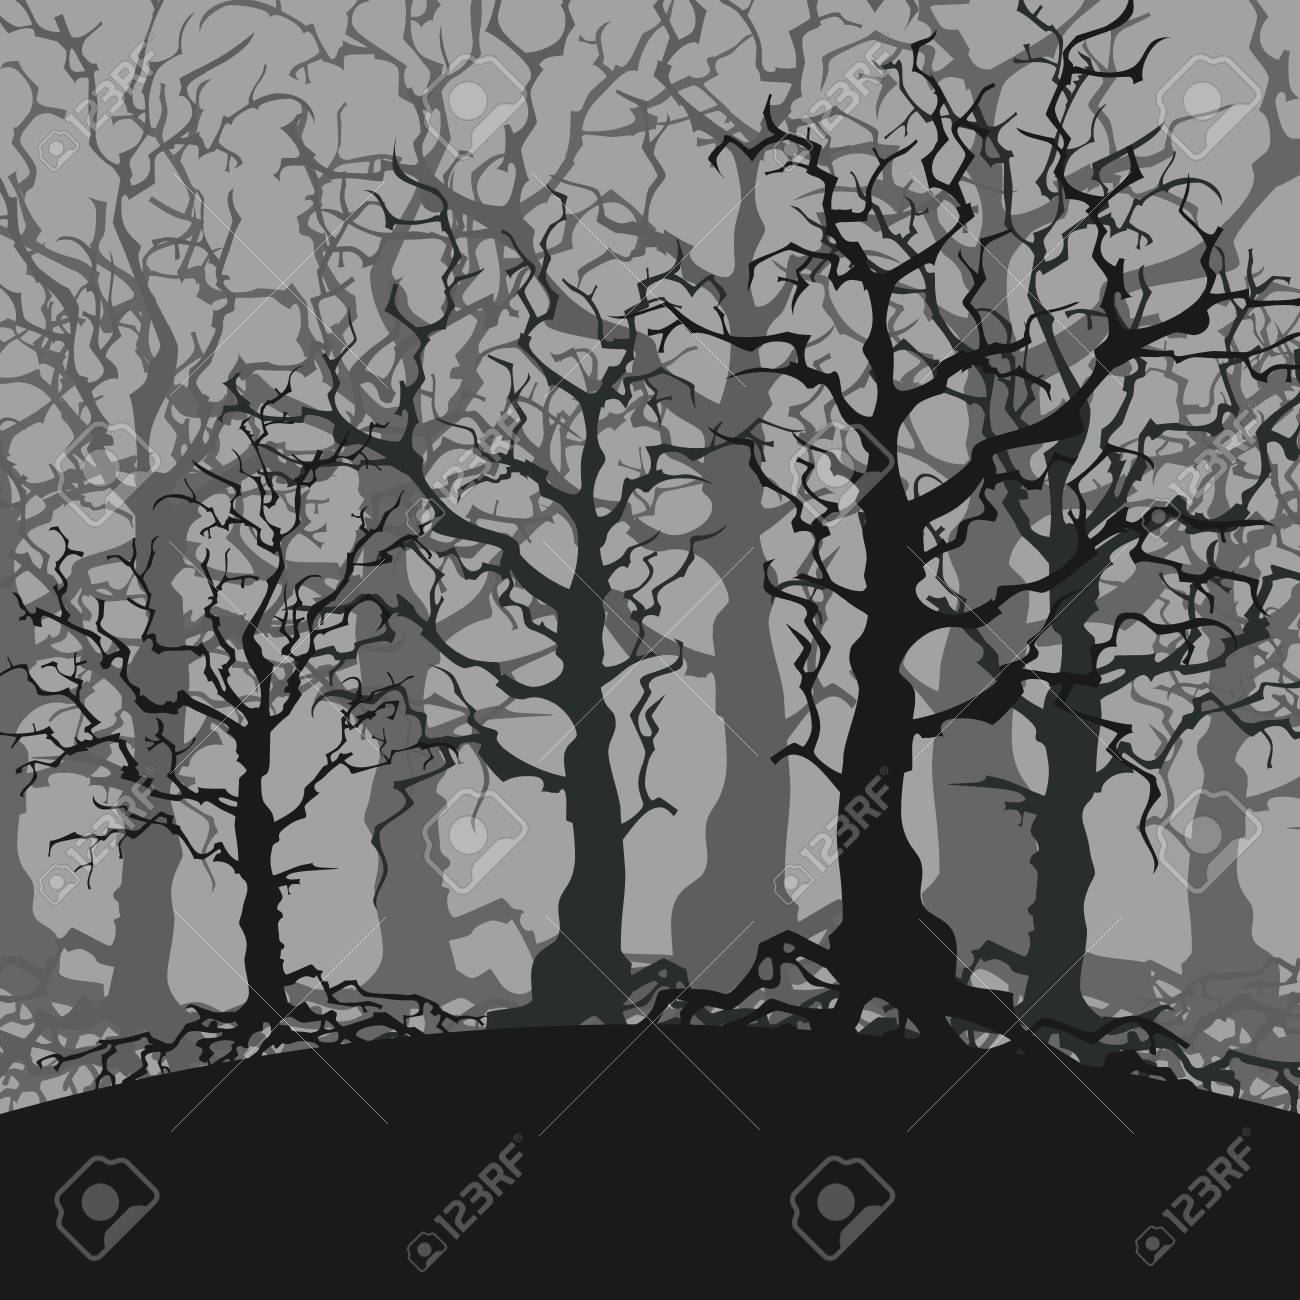 Cartoon Gloomy Dark Forest Background Of Trees Without Leaves